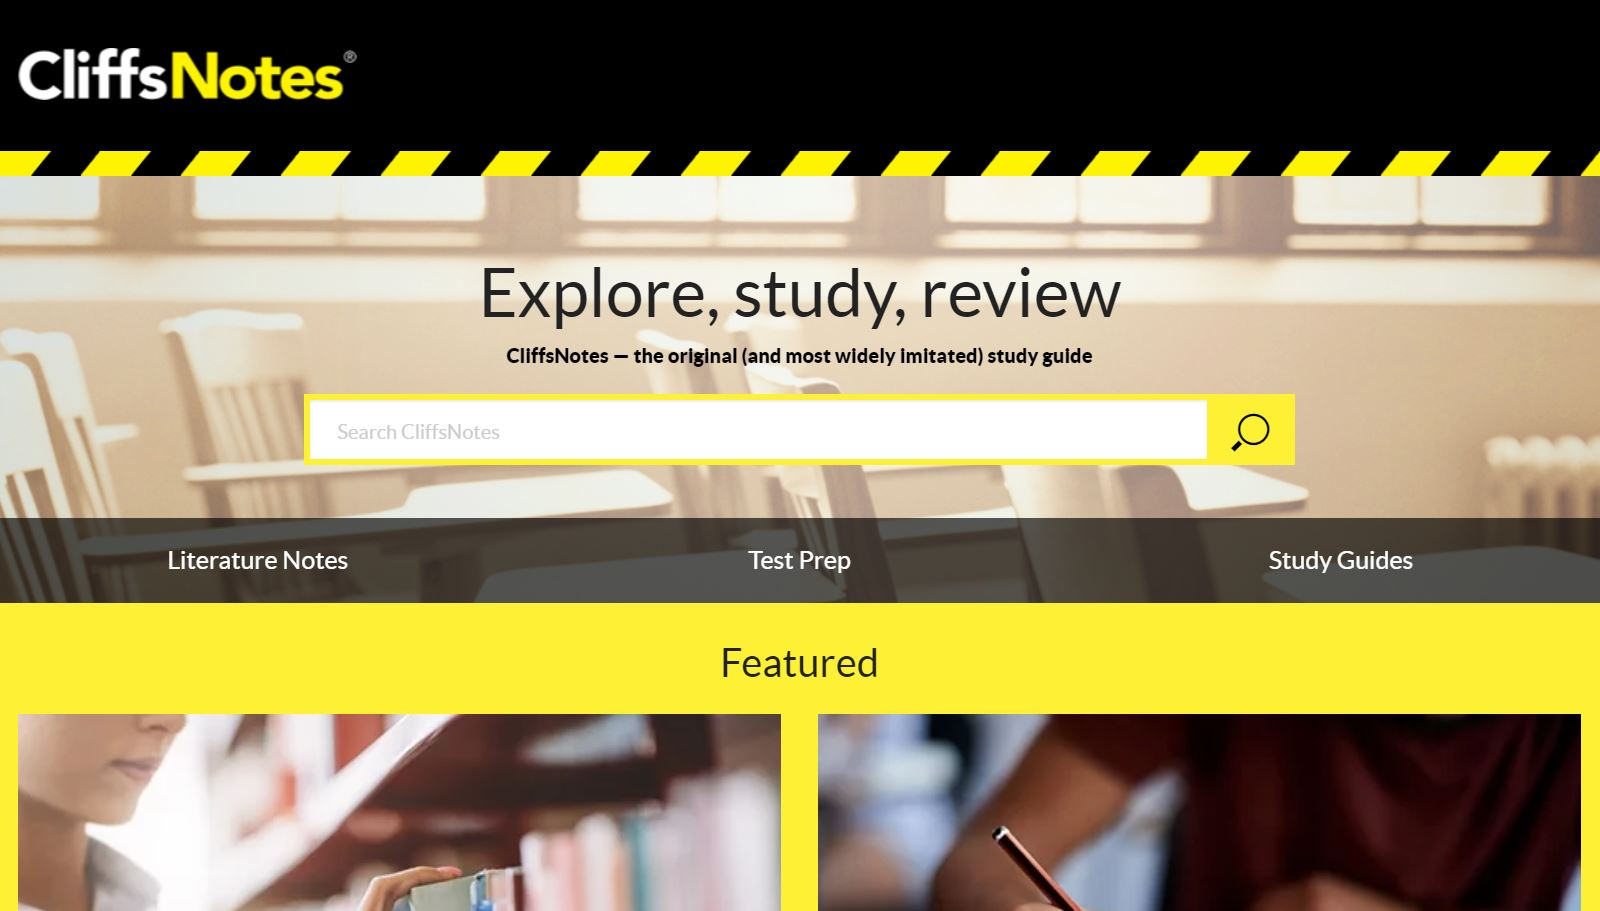 cliffsnotes review